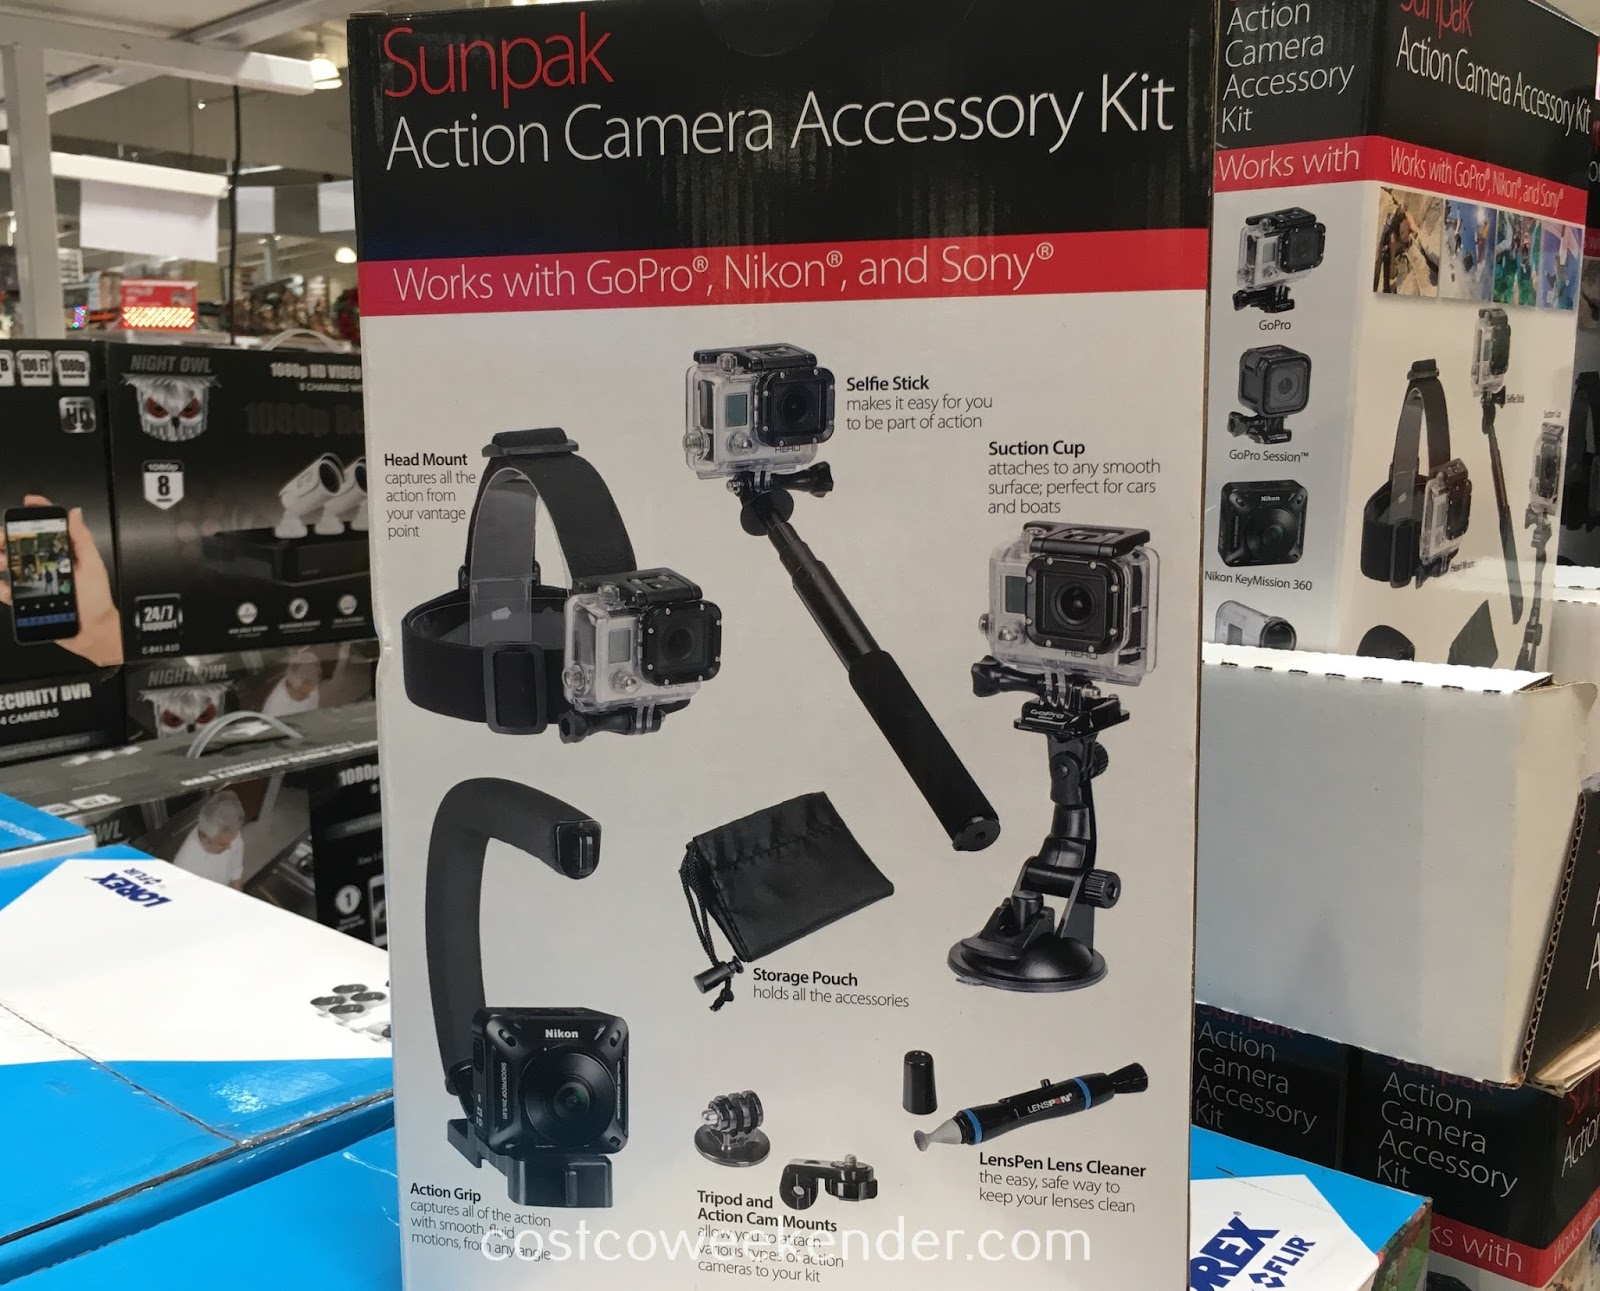 Costco 1064368 - Great for any photographer or weekend warrior